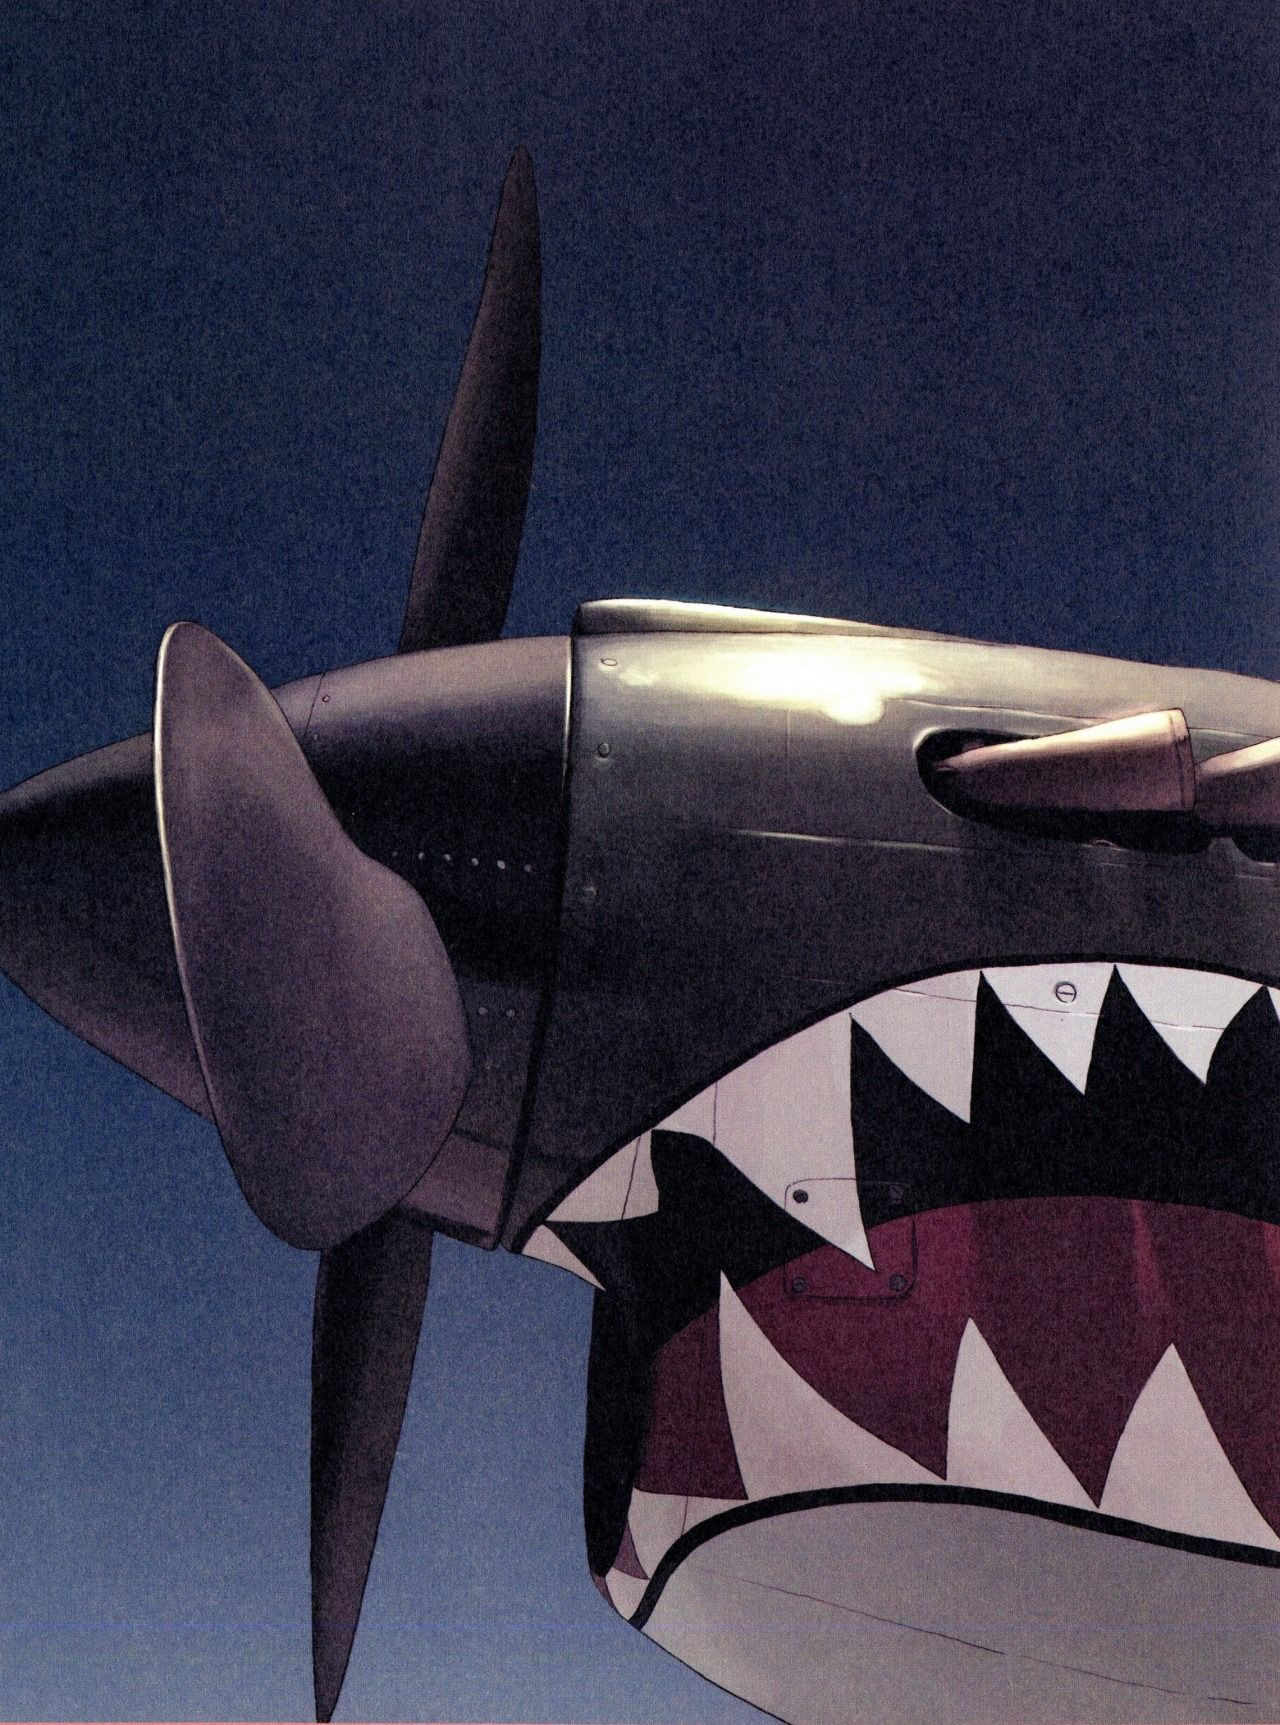 Aircraft Carrier Engine Room: Nose Art, Vintage Planes, Aircraft